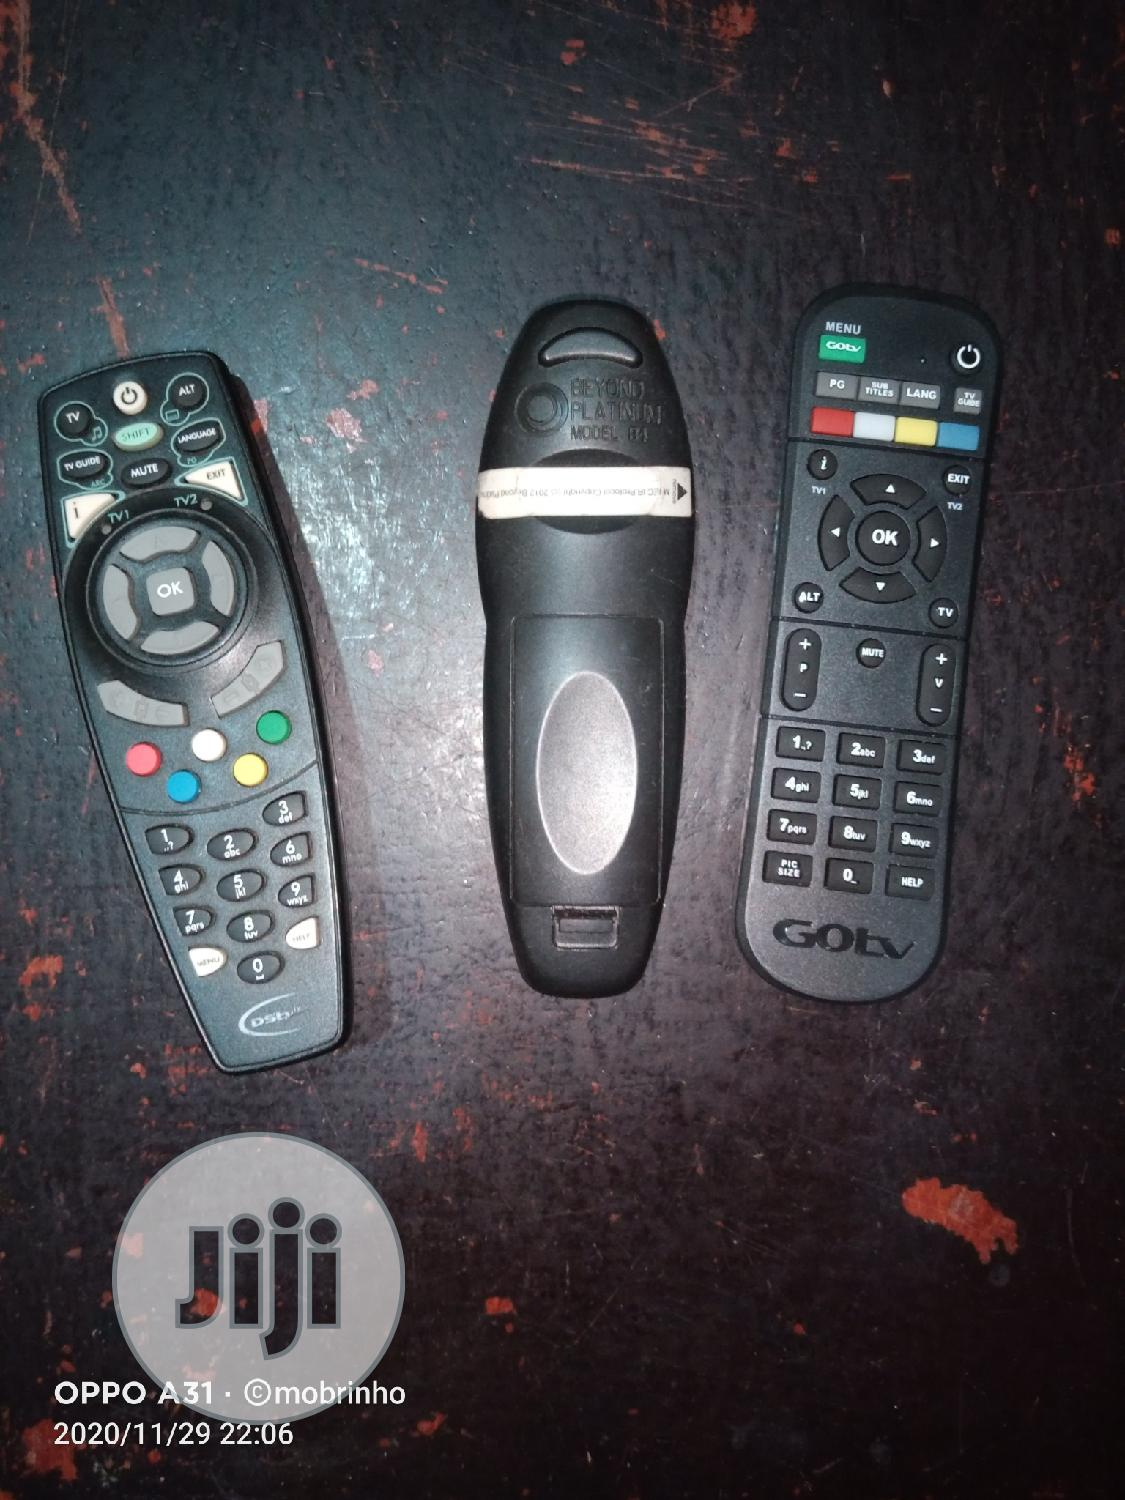 Startimes Antennas,HDMI Cables,And Remotes for Sale | Accessories & Supplies for Electronics for sale in Apapa, Lagos State, Nigeria